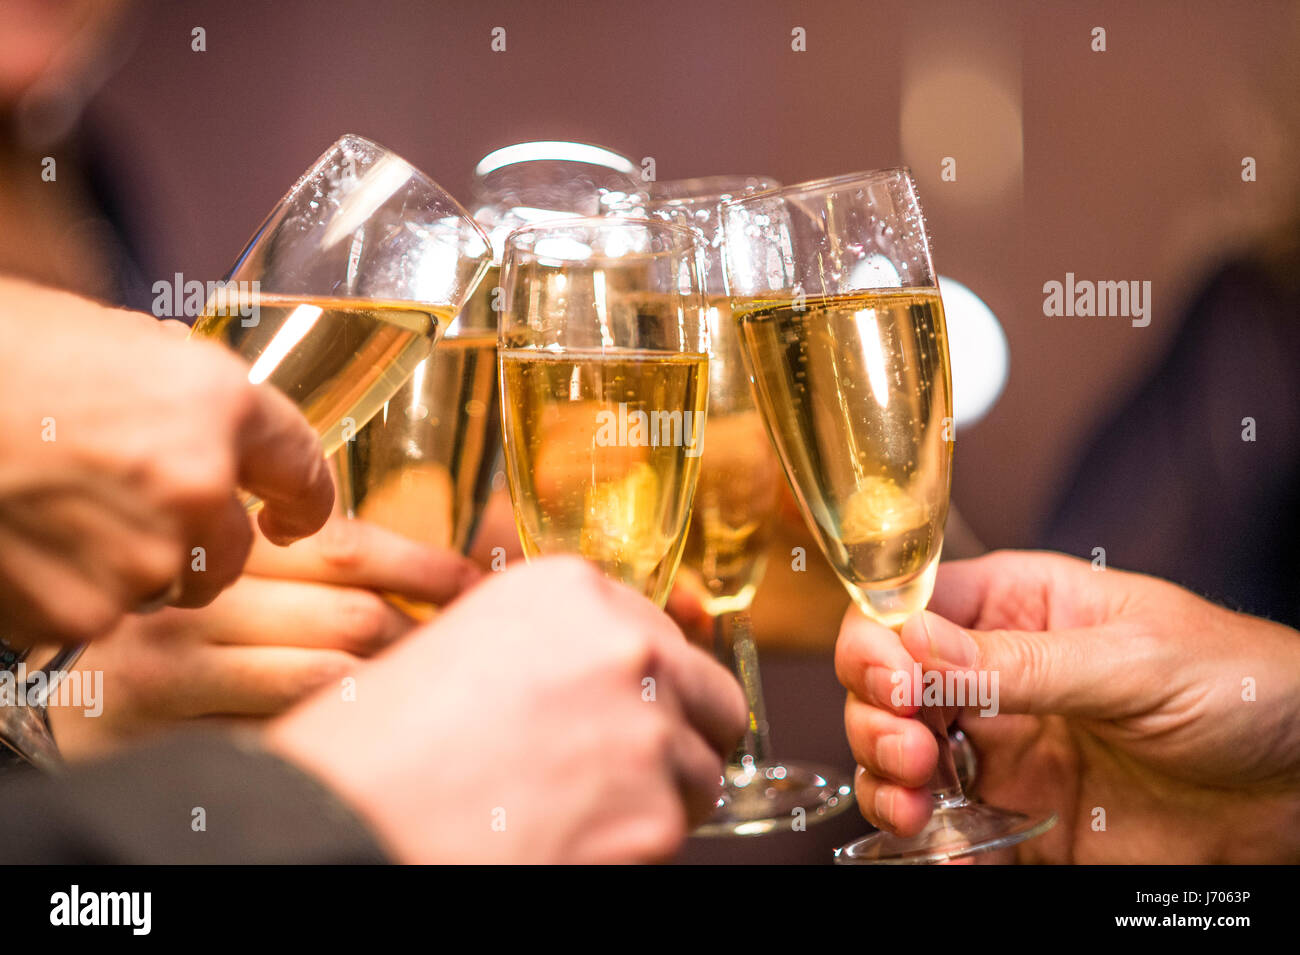 champagne glasses - Stock Image